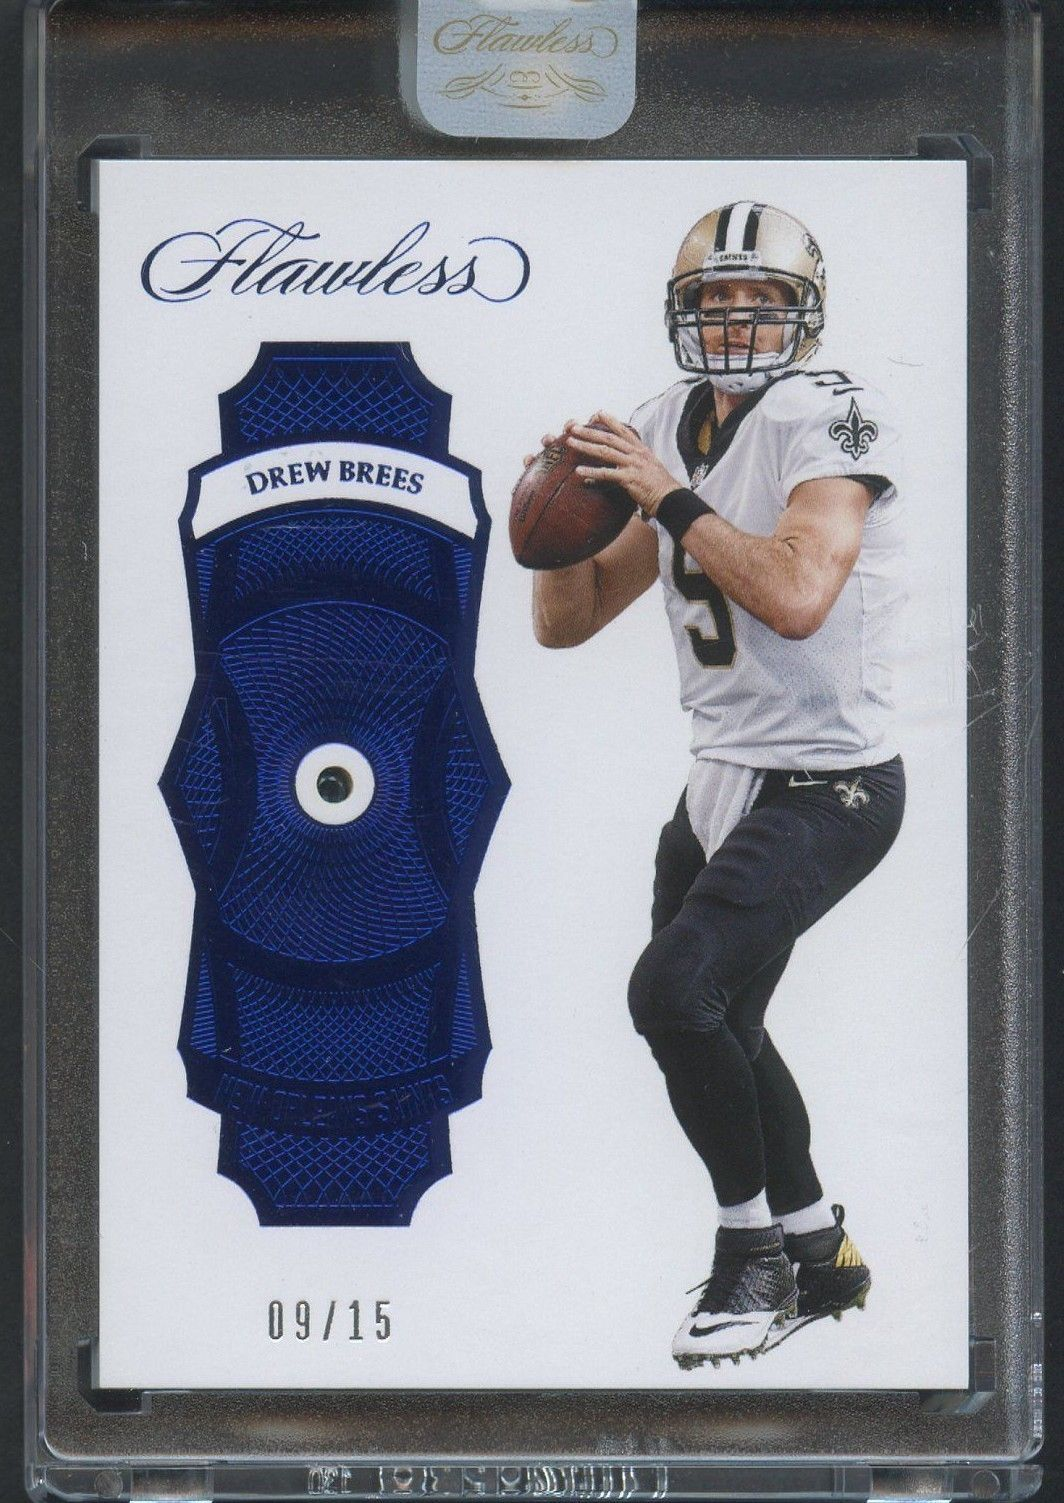 drew jersey pin saints flawless sapphire orleans new brees